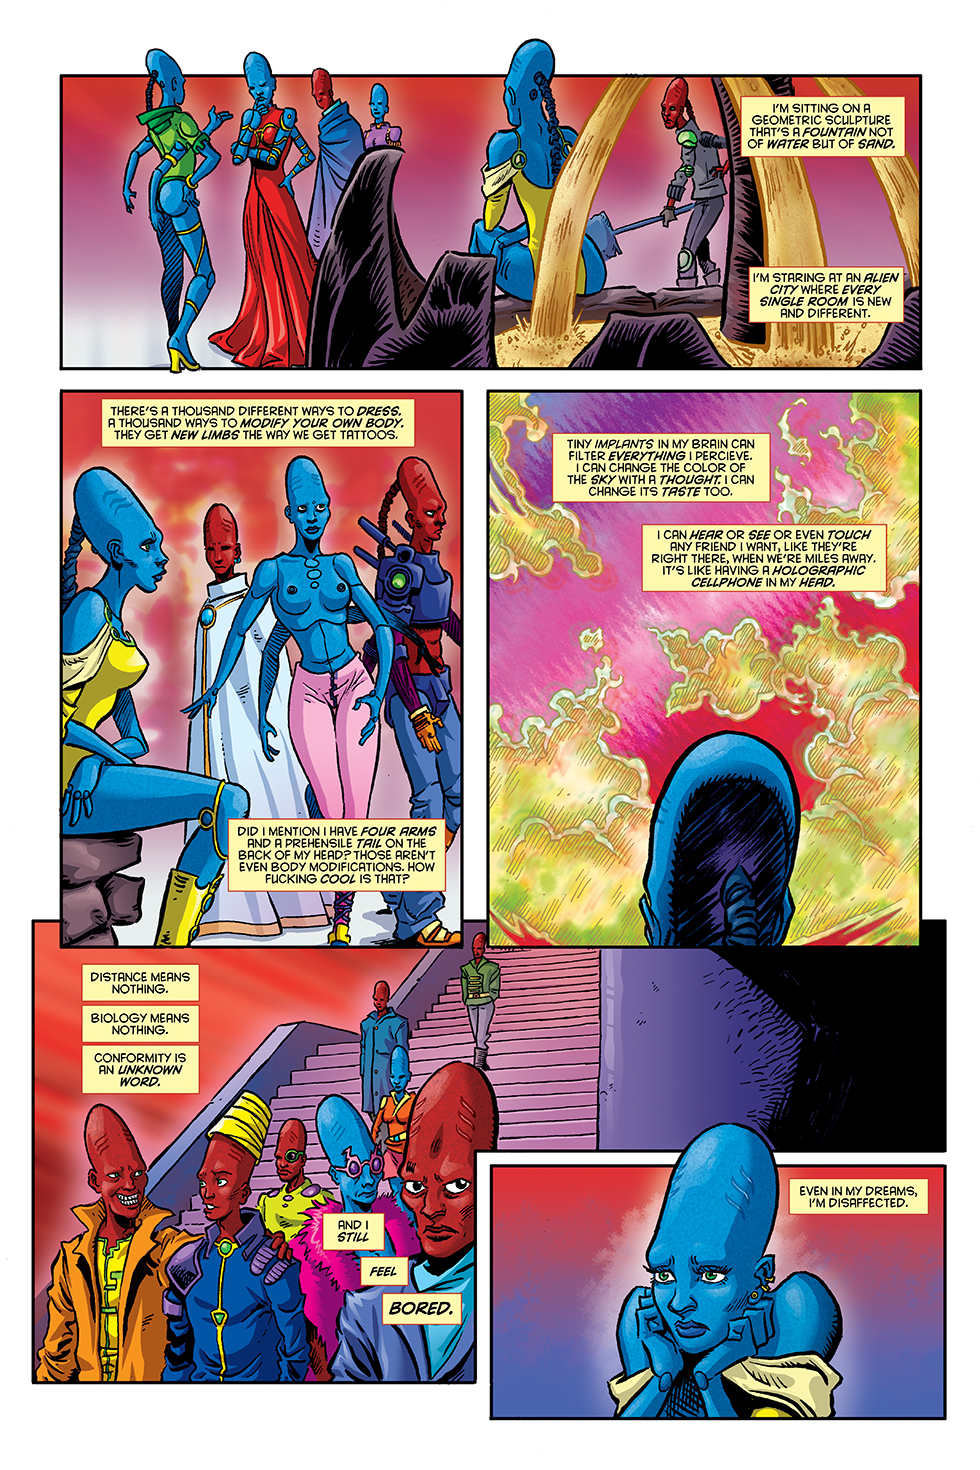 Martian Comics #1, chapter 1, page 2